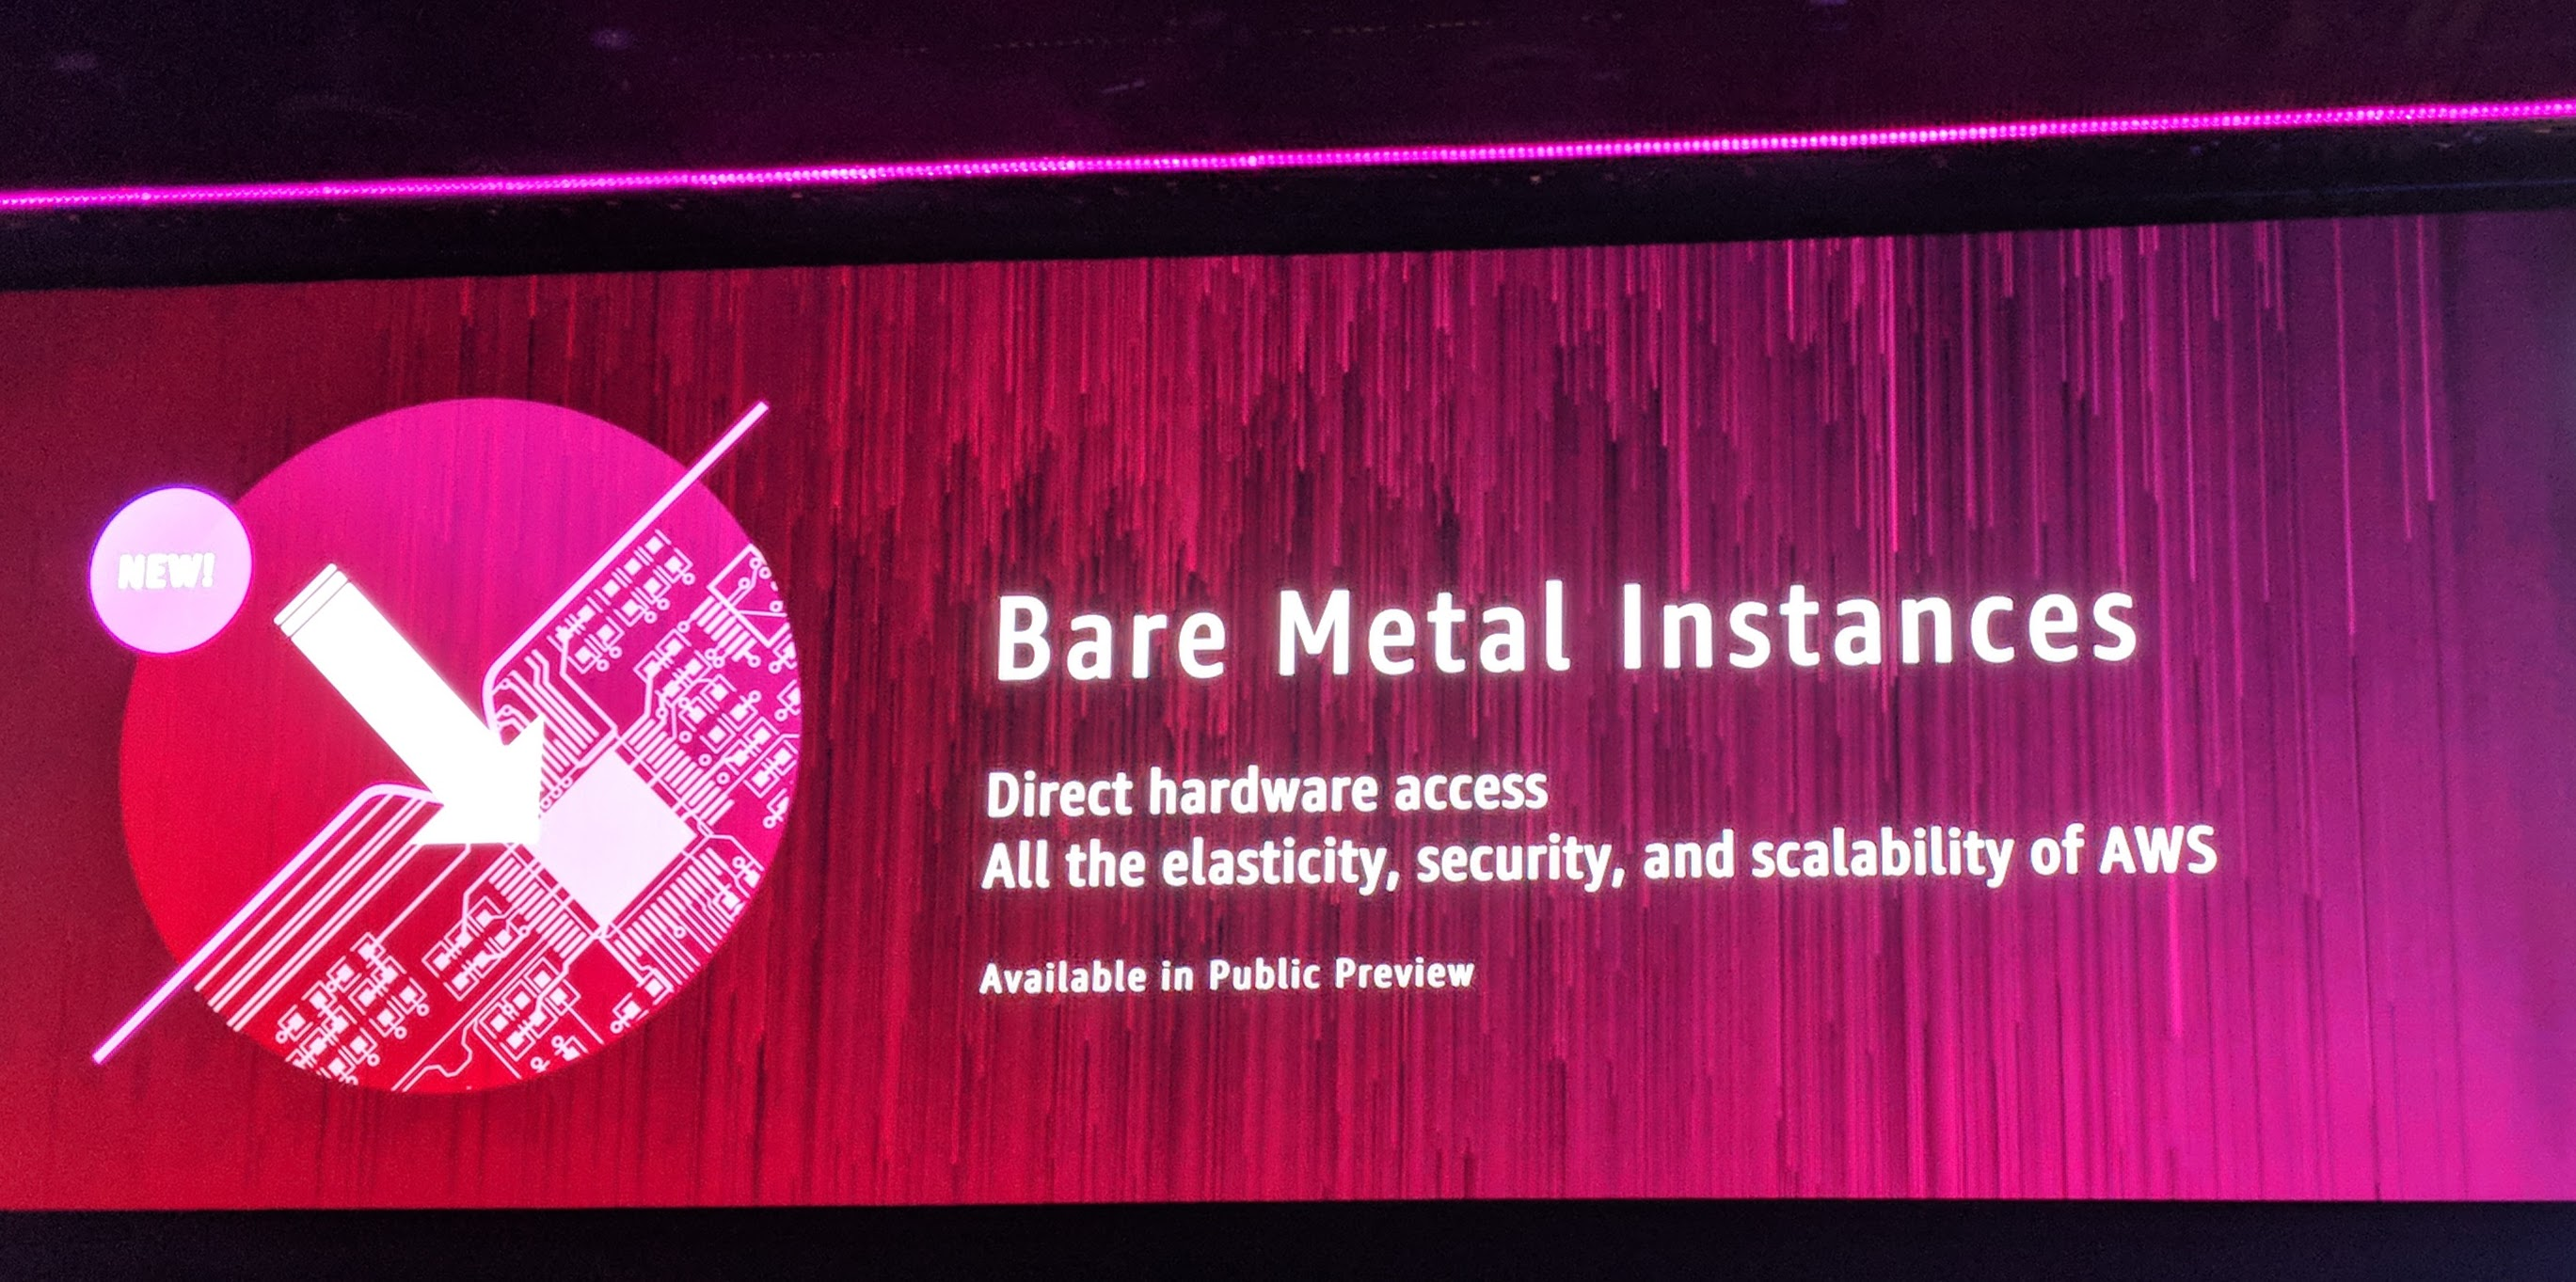 AWS launches bare metal instances | TechCrunch